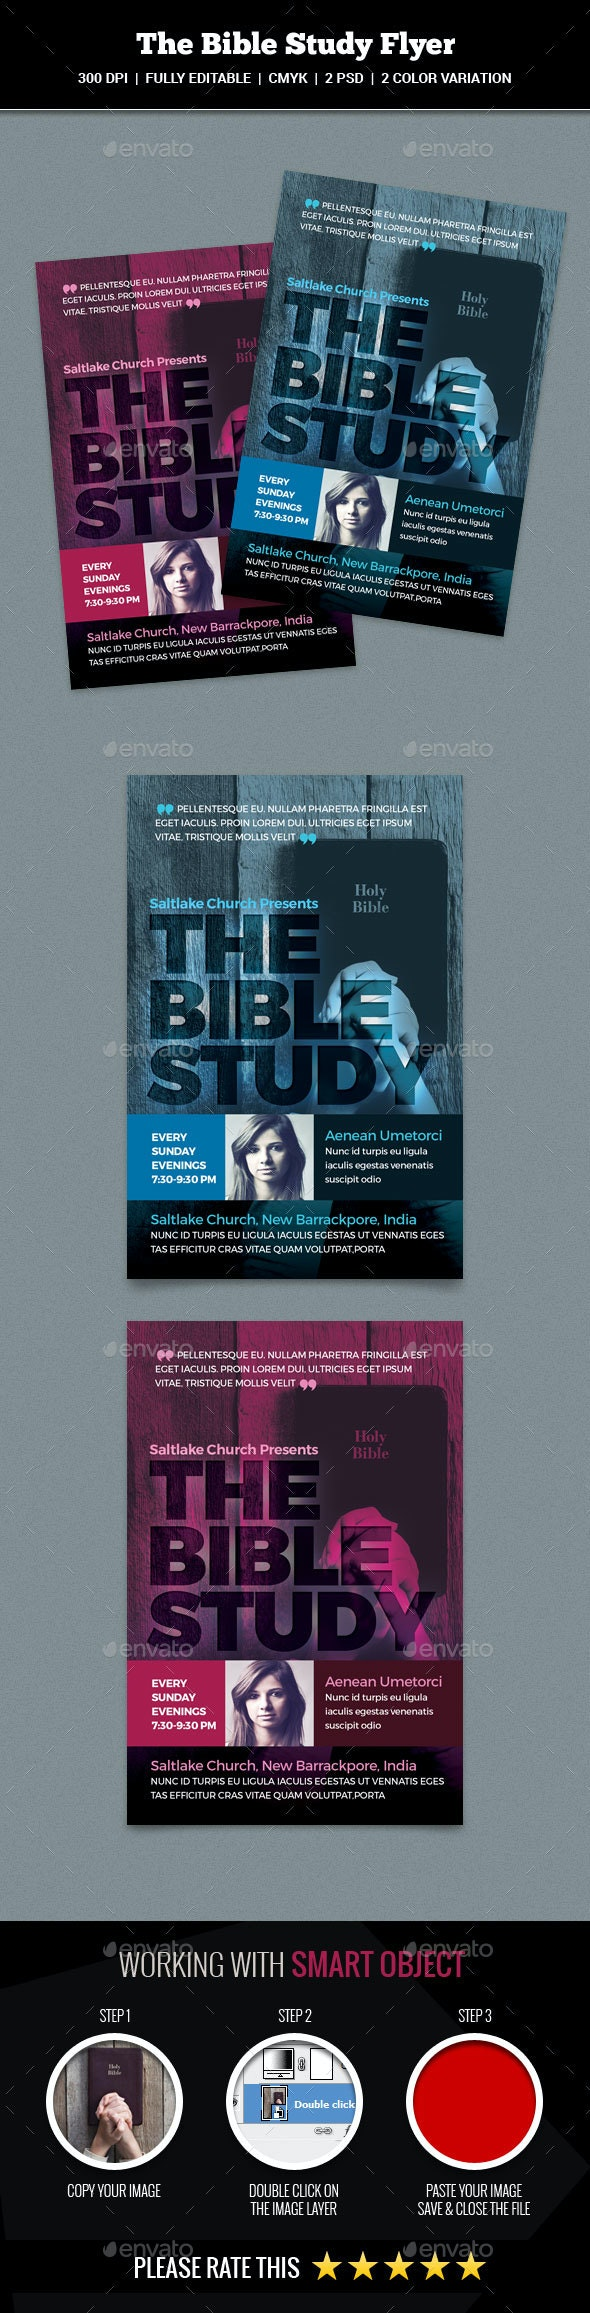 The Bible Study Flyer - Church Flyers